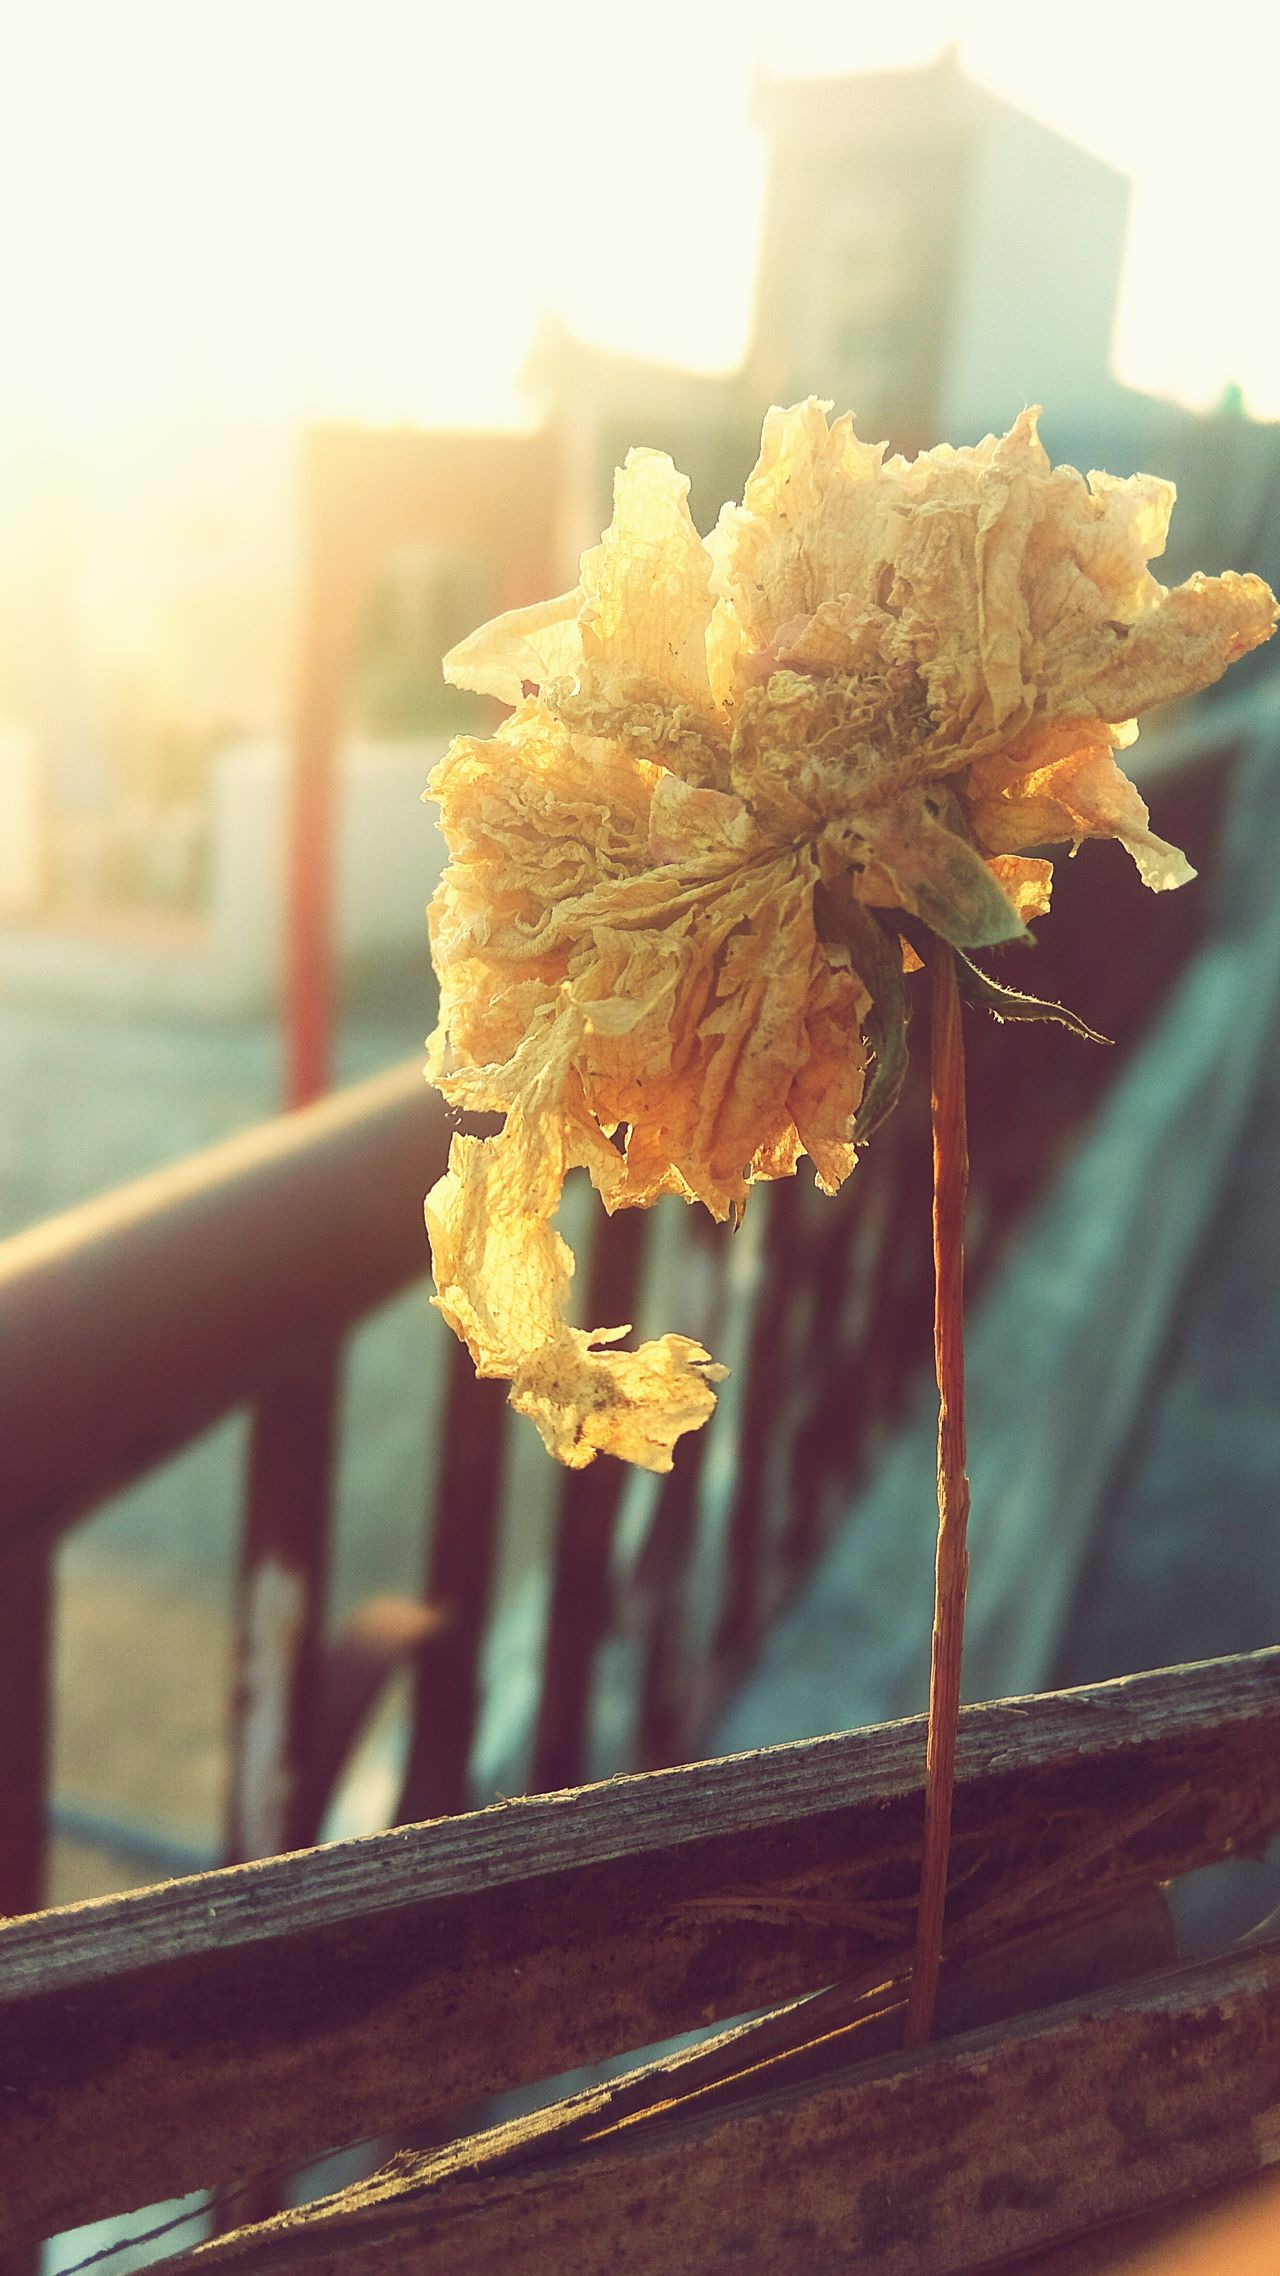 Focus On Foreground Close-up Outdoors Dead Leaves Cold Temperature Sky Dead Flowers Adroble Naturelover❤ Sunlight ☀ Nature Dry Flower  Yellow Rose